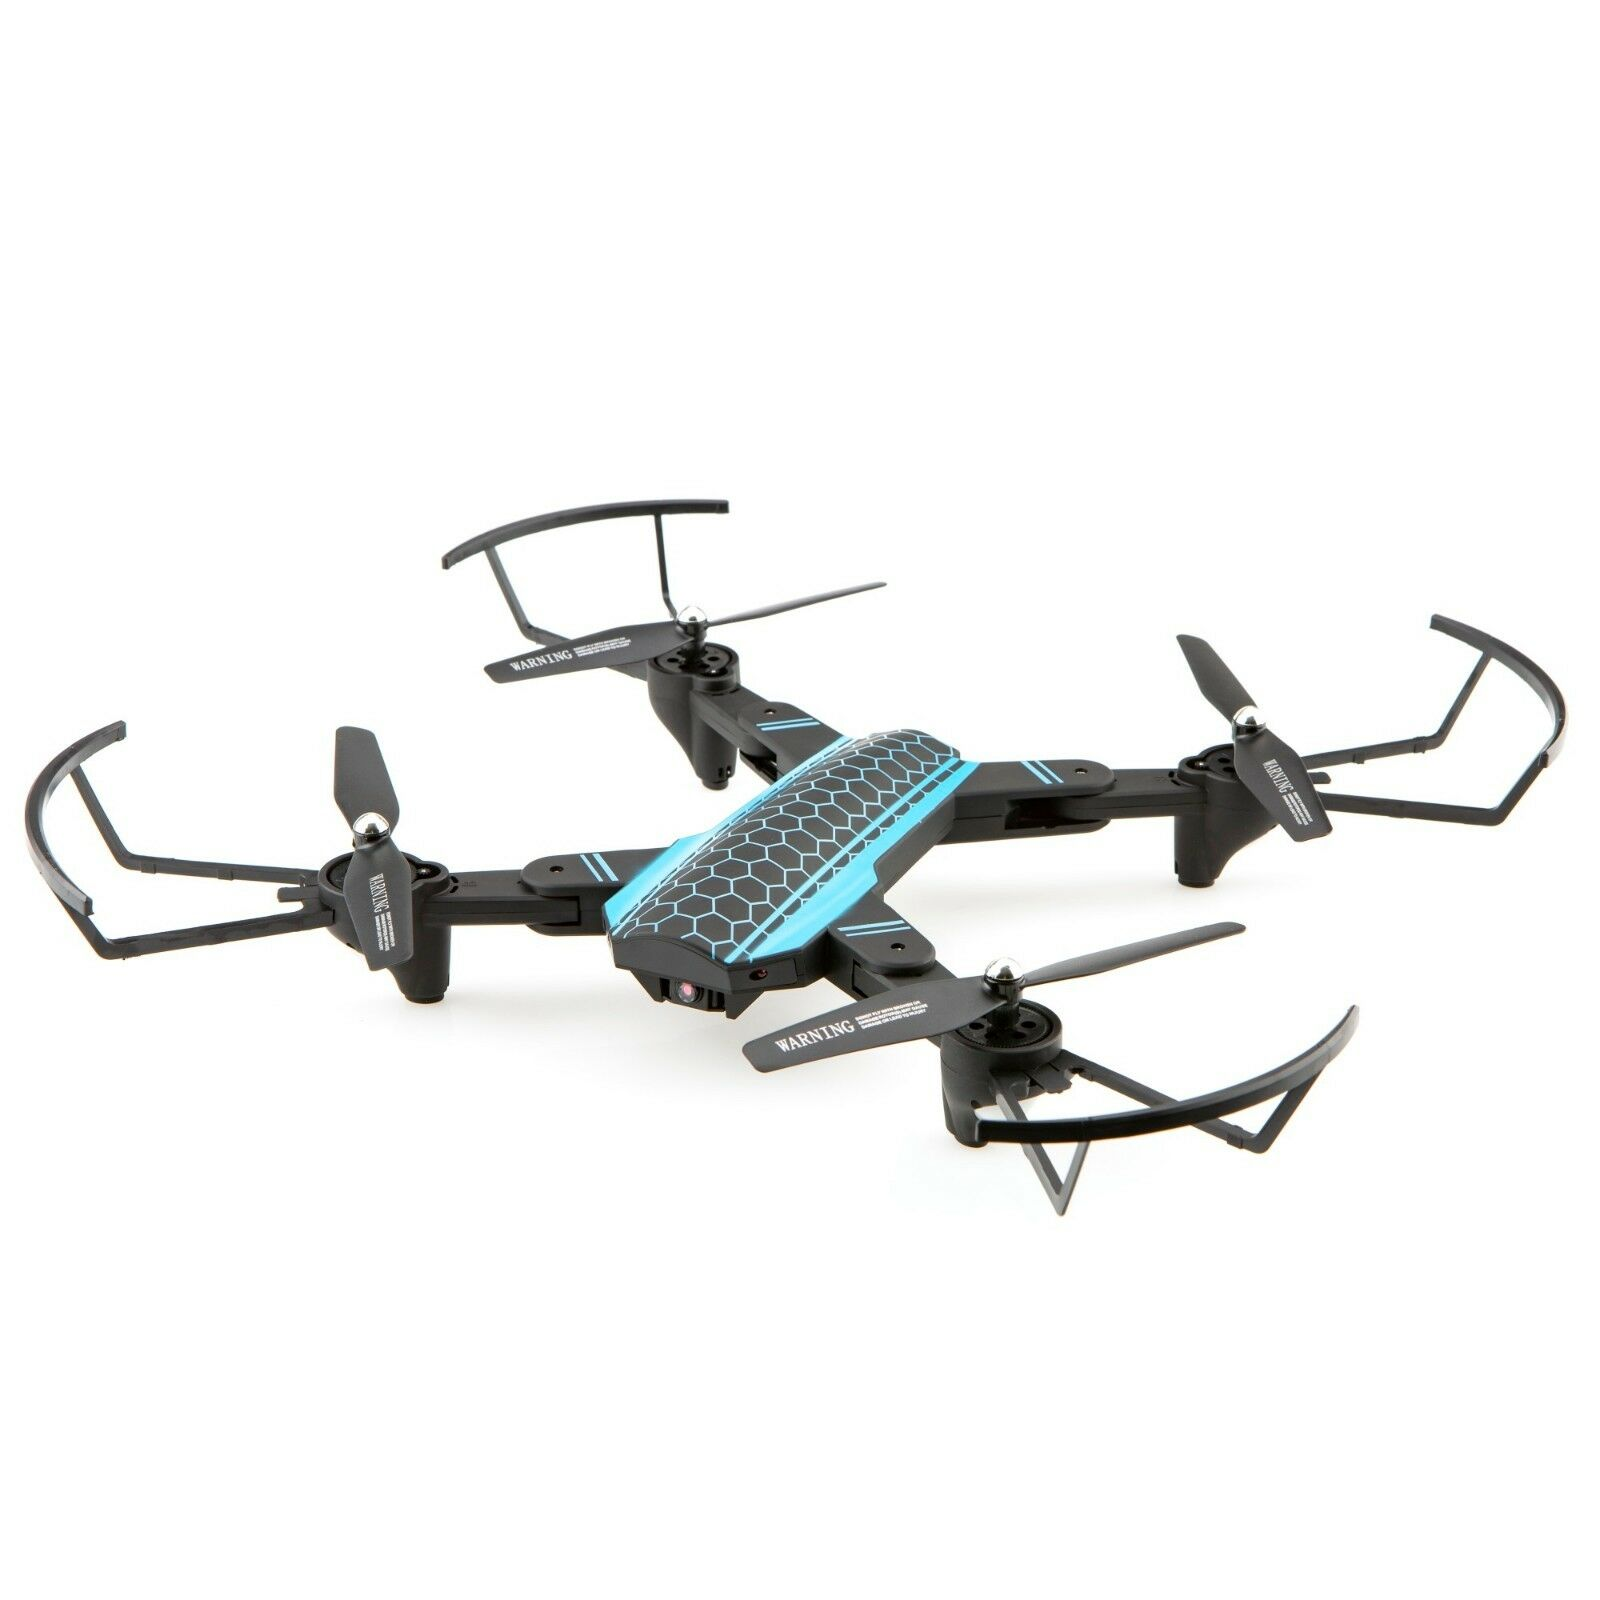 Xtreme Pro Advance Foldable Drone with HD Camera - bluee